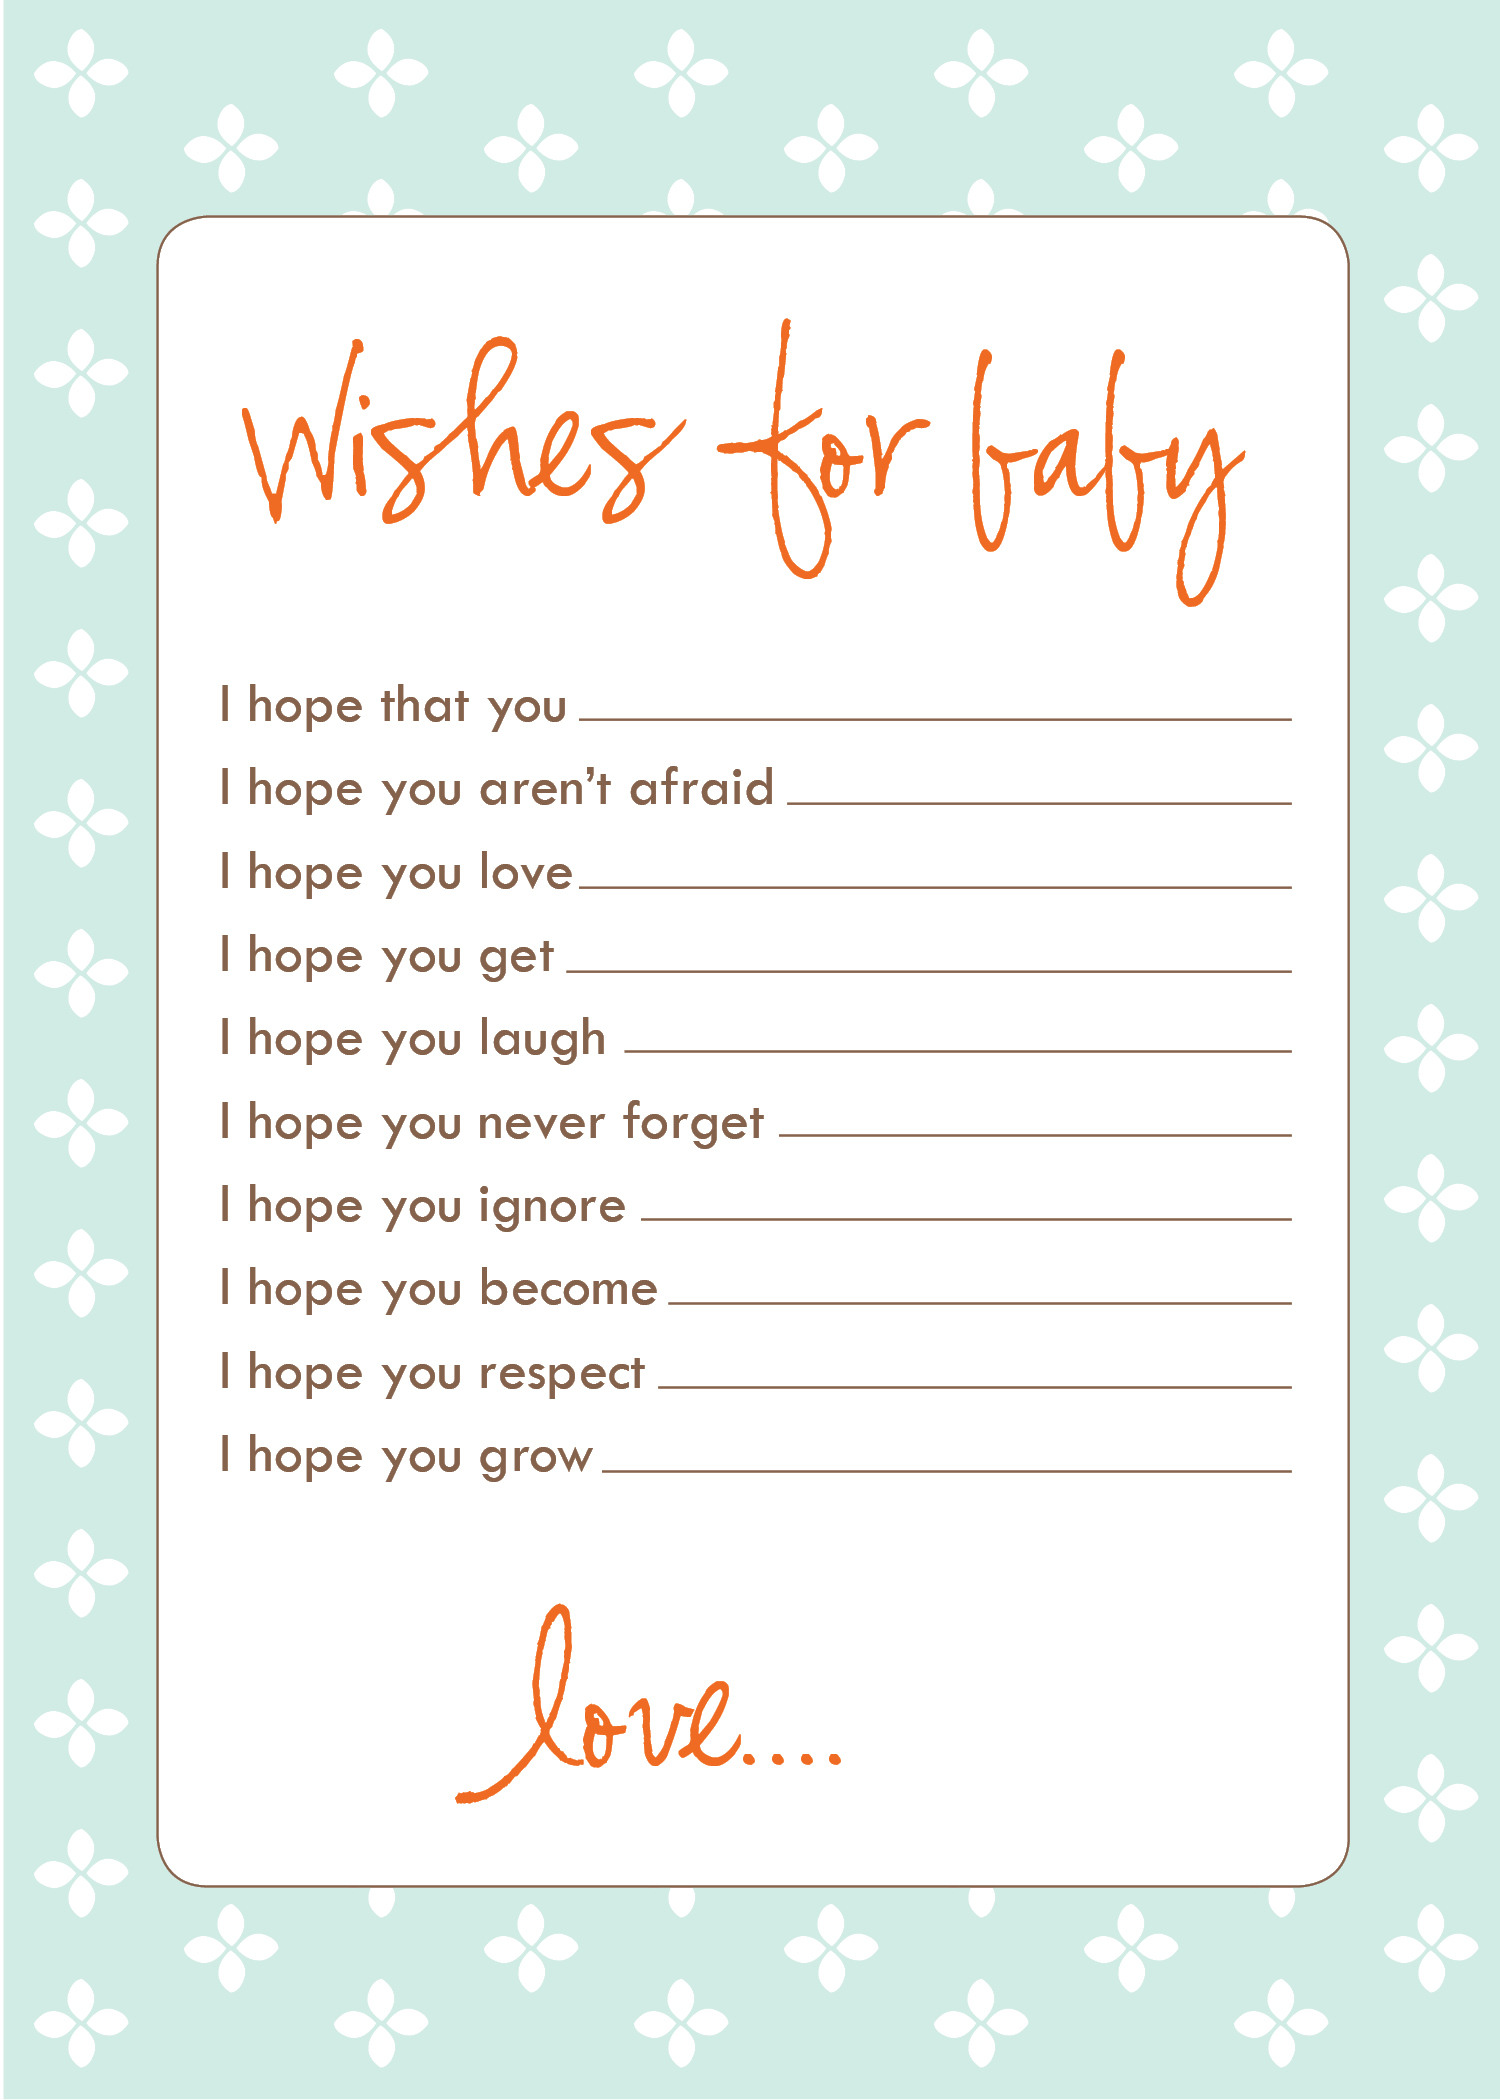 Download your own free wish cards for showers or your own keepsake I LgTx1ZzI